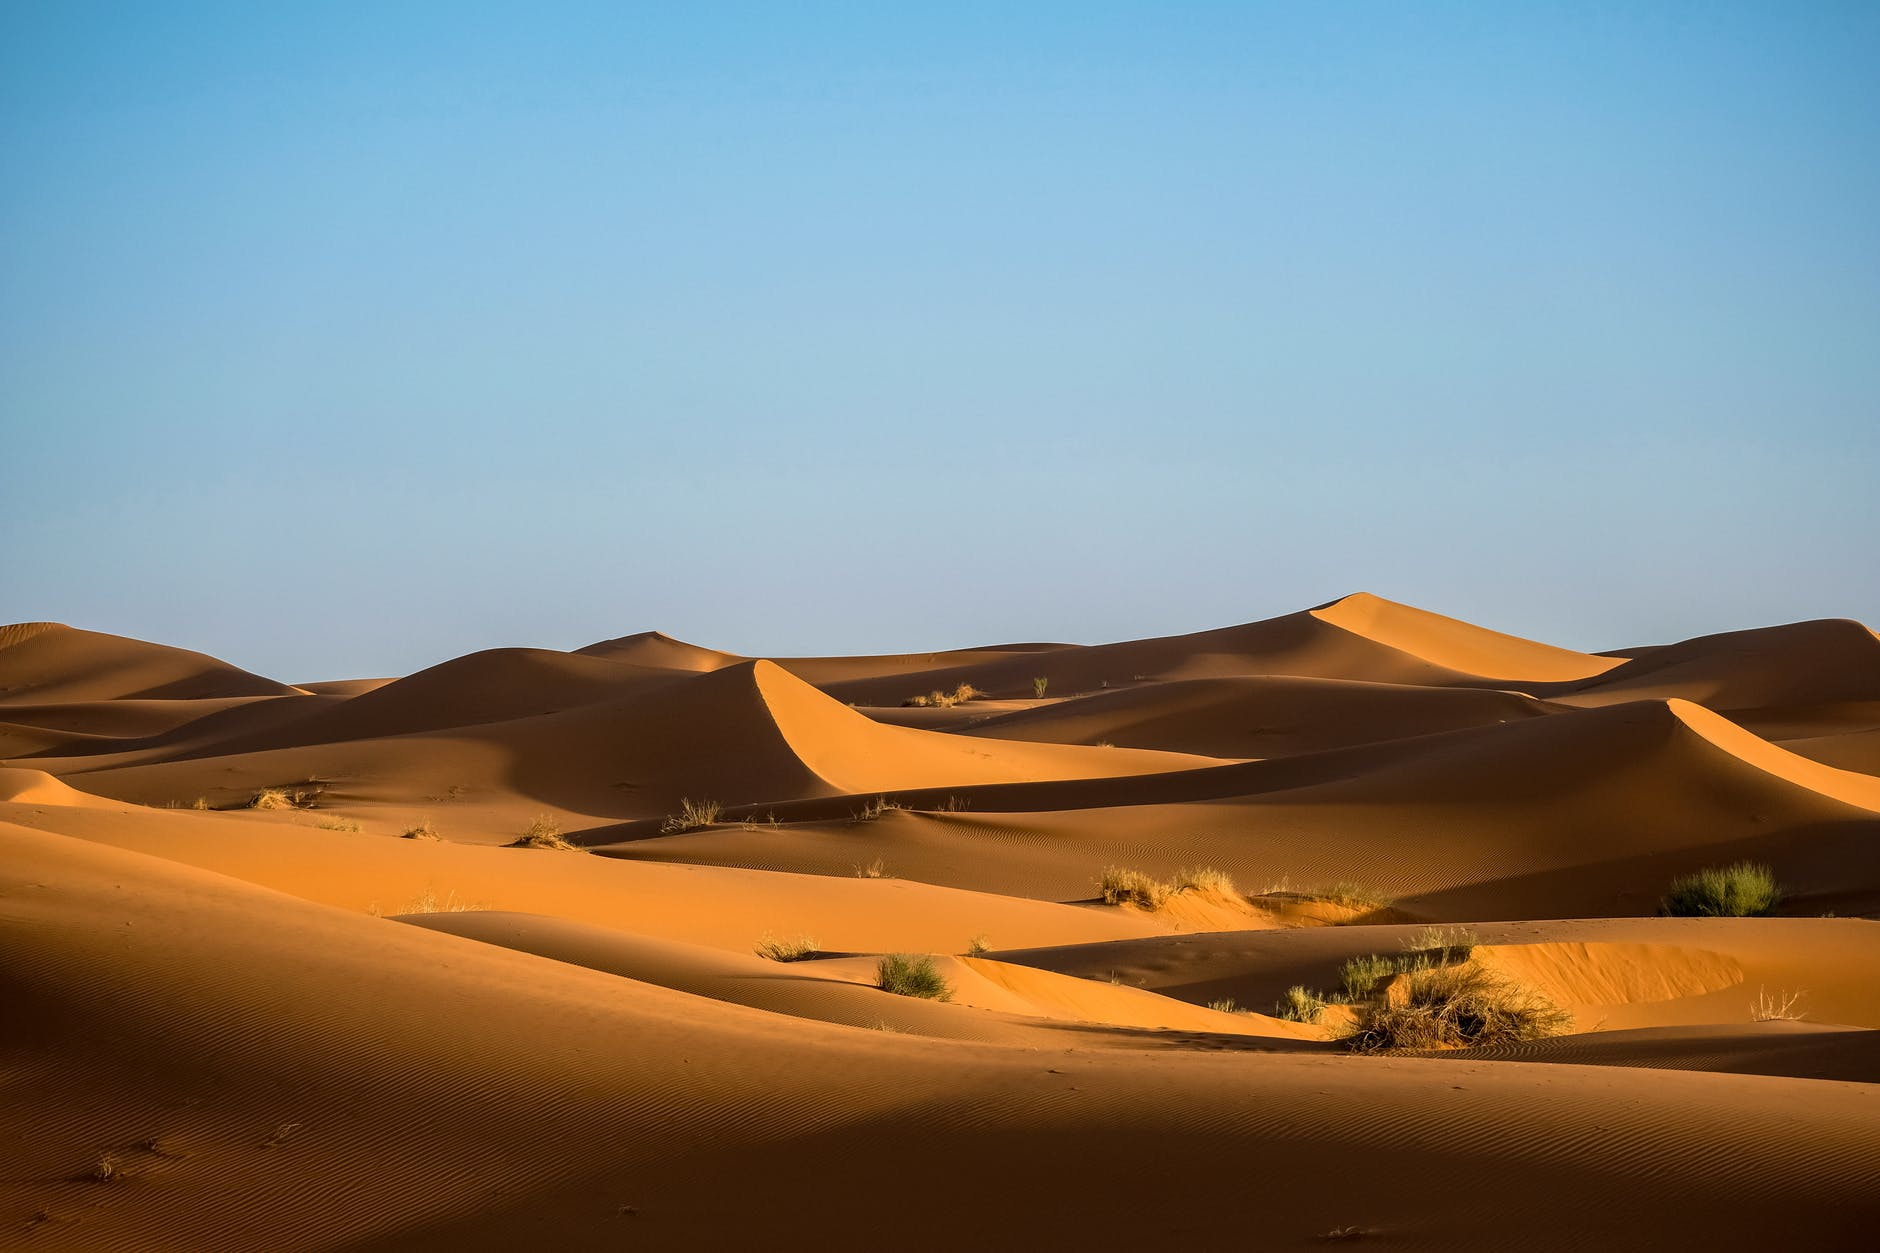 The Largest desert in the world